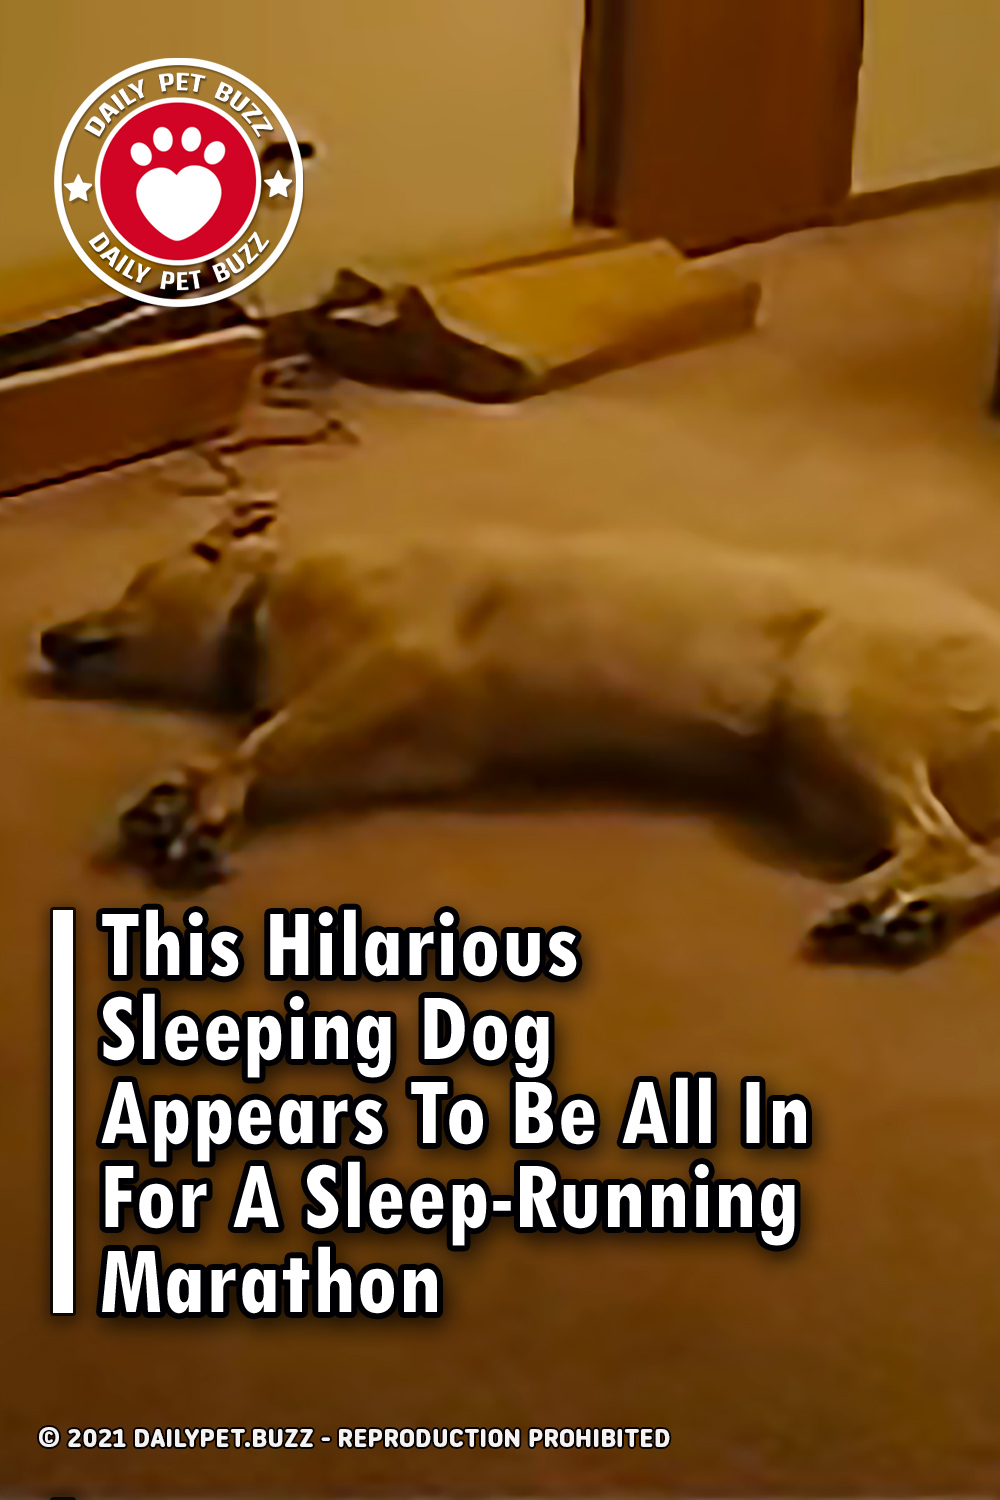 This Hilarious Sleeping Dog Appears To Be All In For A Sleep-Running Marathon